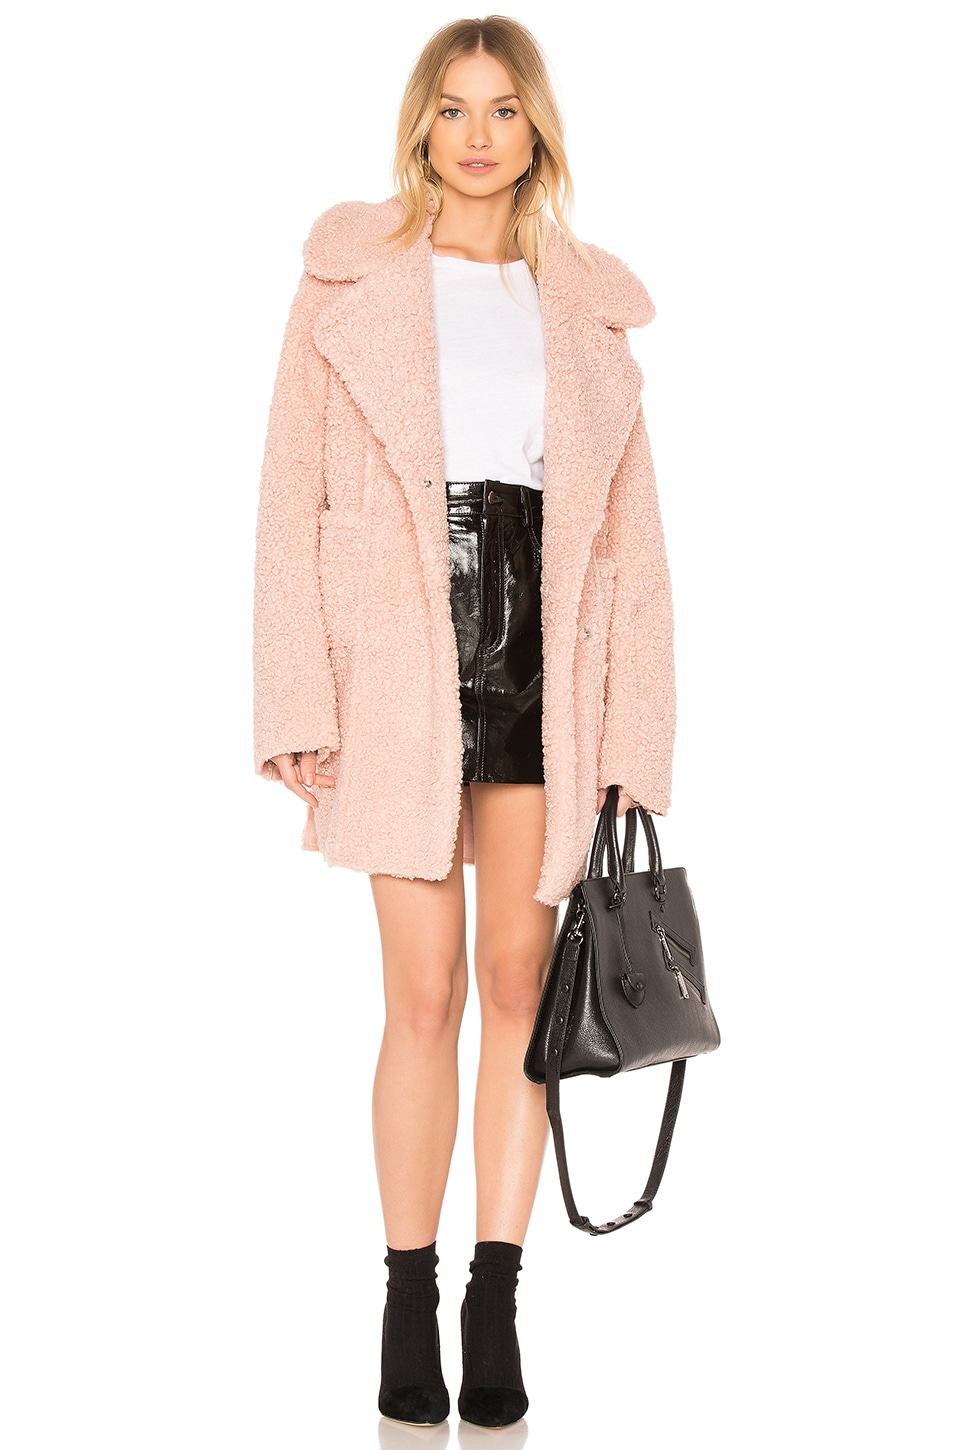 J.O.A. Reversible Shearling Coat in Dusty Pink